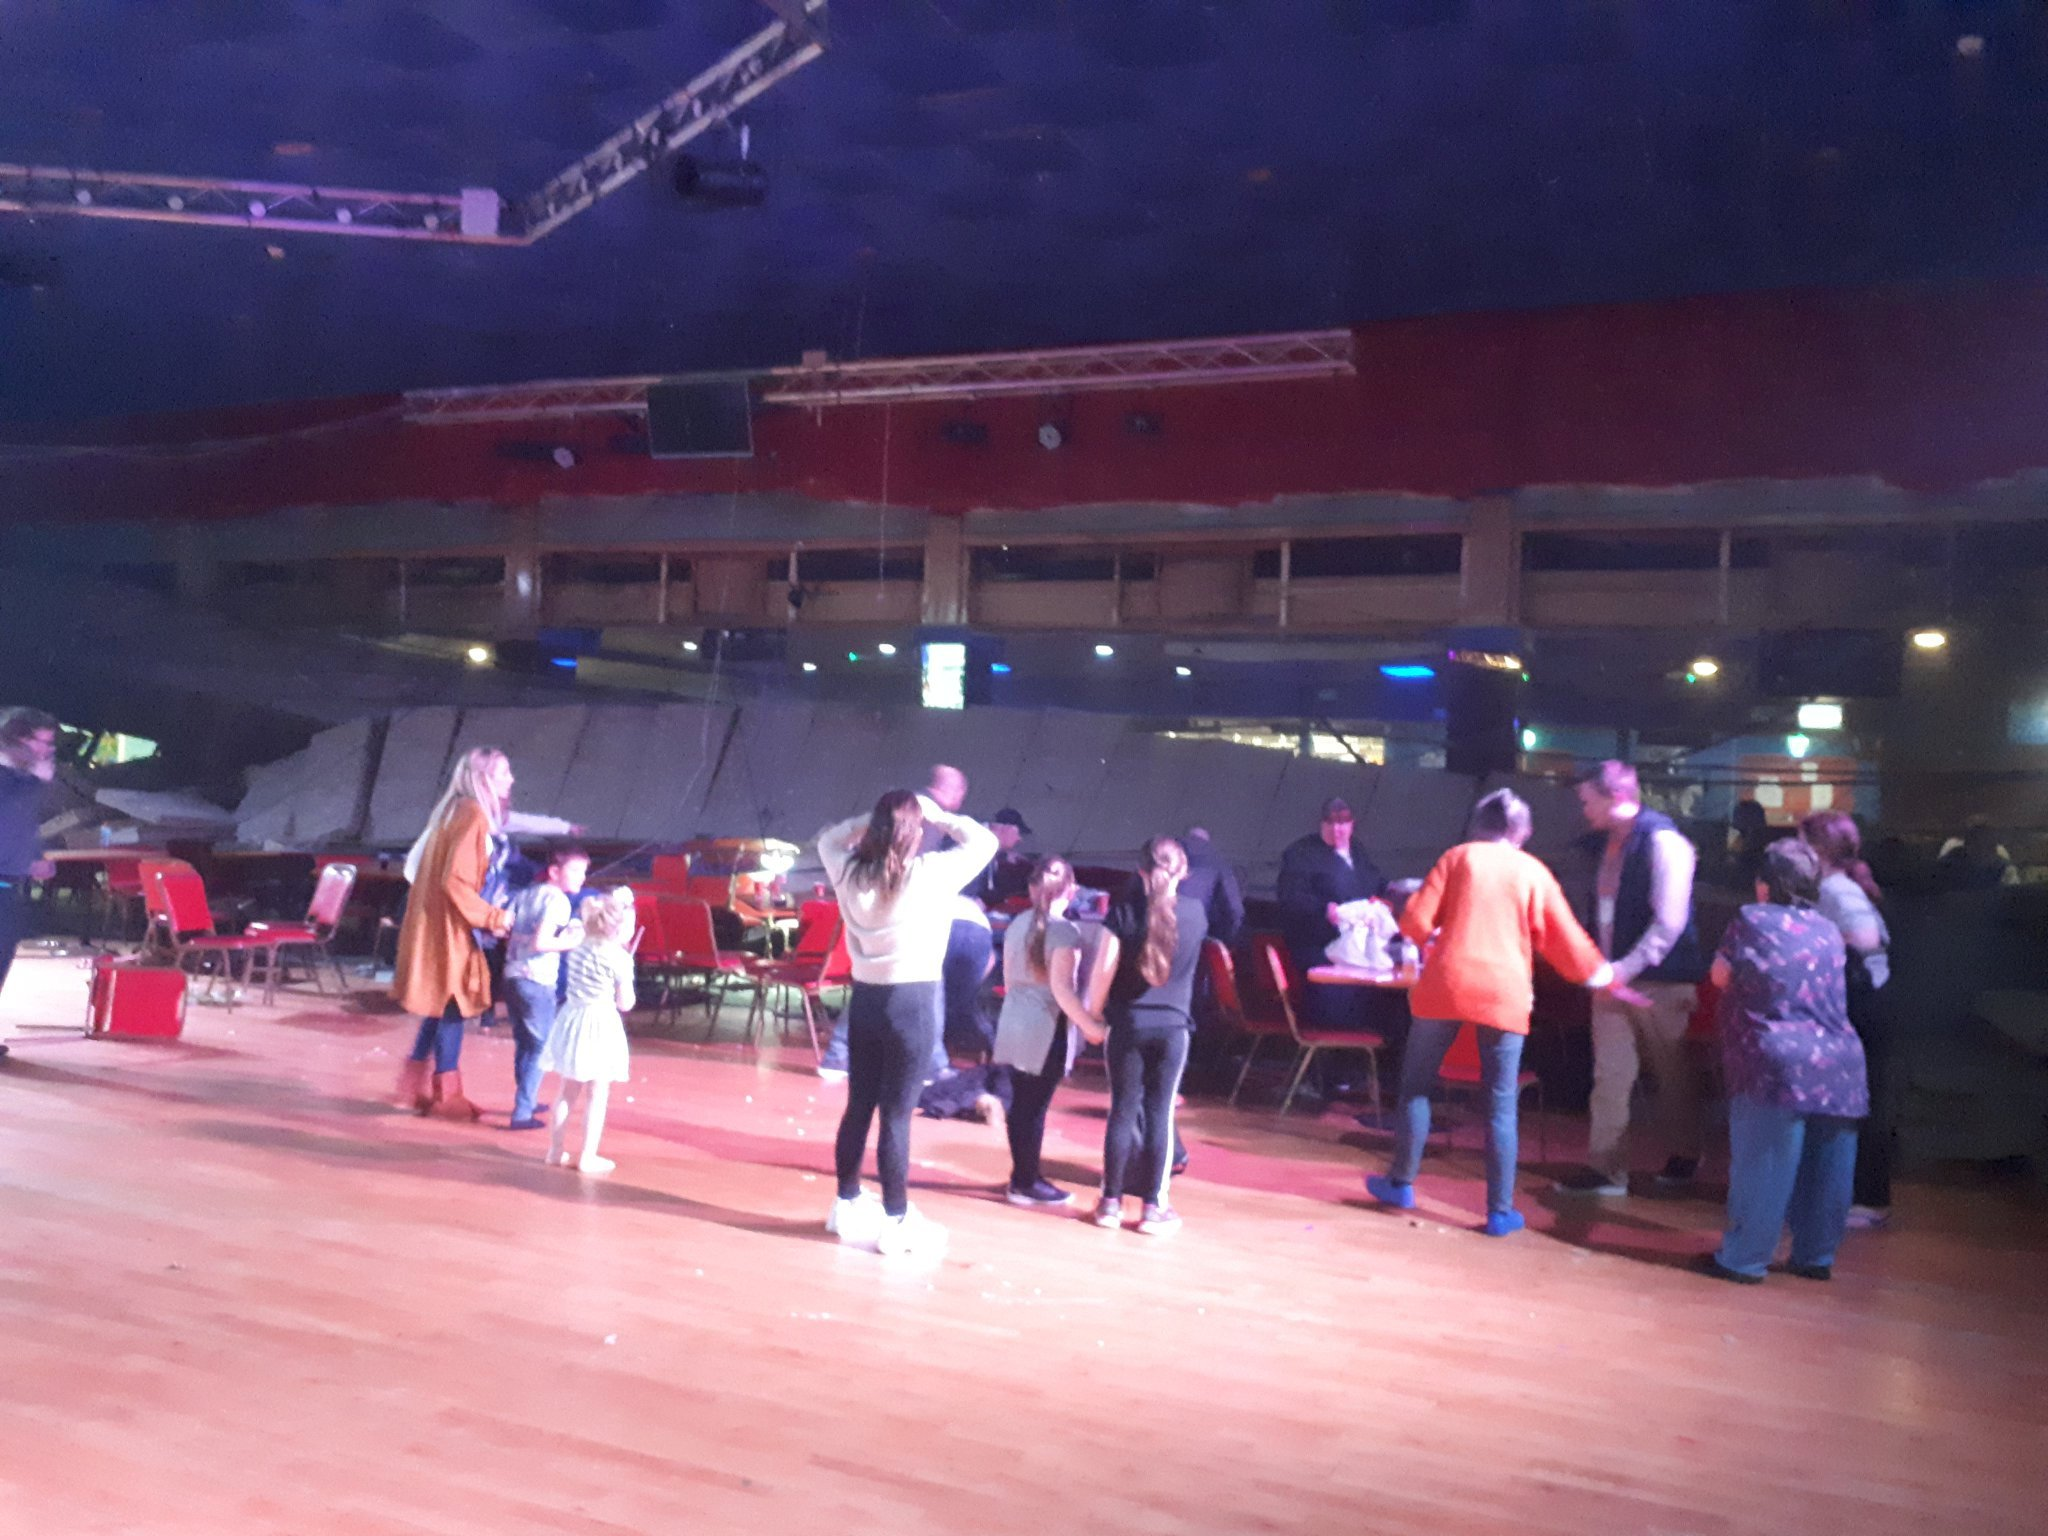 """The scene at Pontins, Brean sands where a ceiling collapsed trapping some guests. See SWNS story SWBRtrapped; People are reportedly trapped after a heating vent collapsed onto a crowd at a busy Pontins resort. Police cars, fire engines and ambulance crews were called after part of the heating system collapsed in the 'fun factory' amusement venue. One witness said that children were trapped underneath the huge structure in the Pontins Brean Sands Holiday Park, in Somerset. The woman reported hearing """"screaming"""" as parts of the roof fell to the floor during a busy half-term break."""